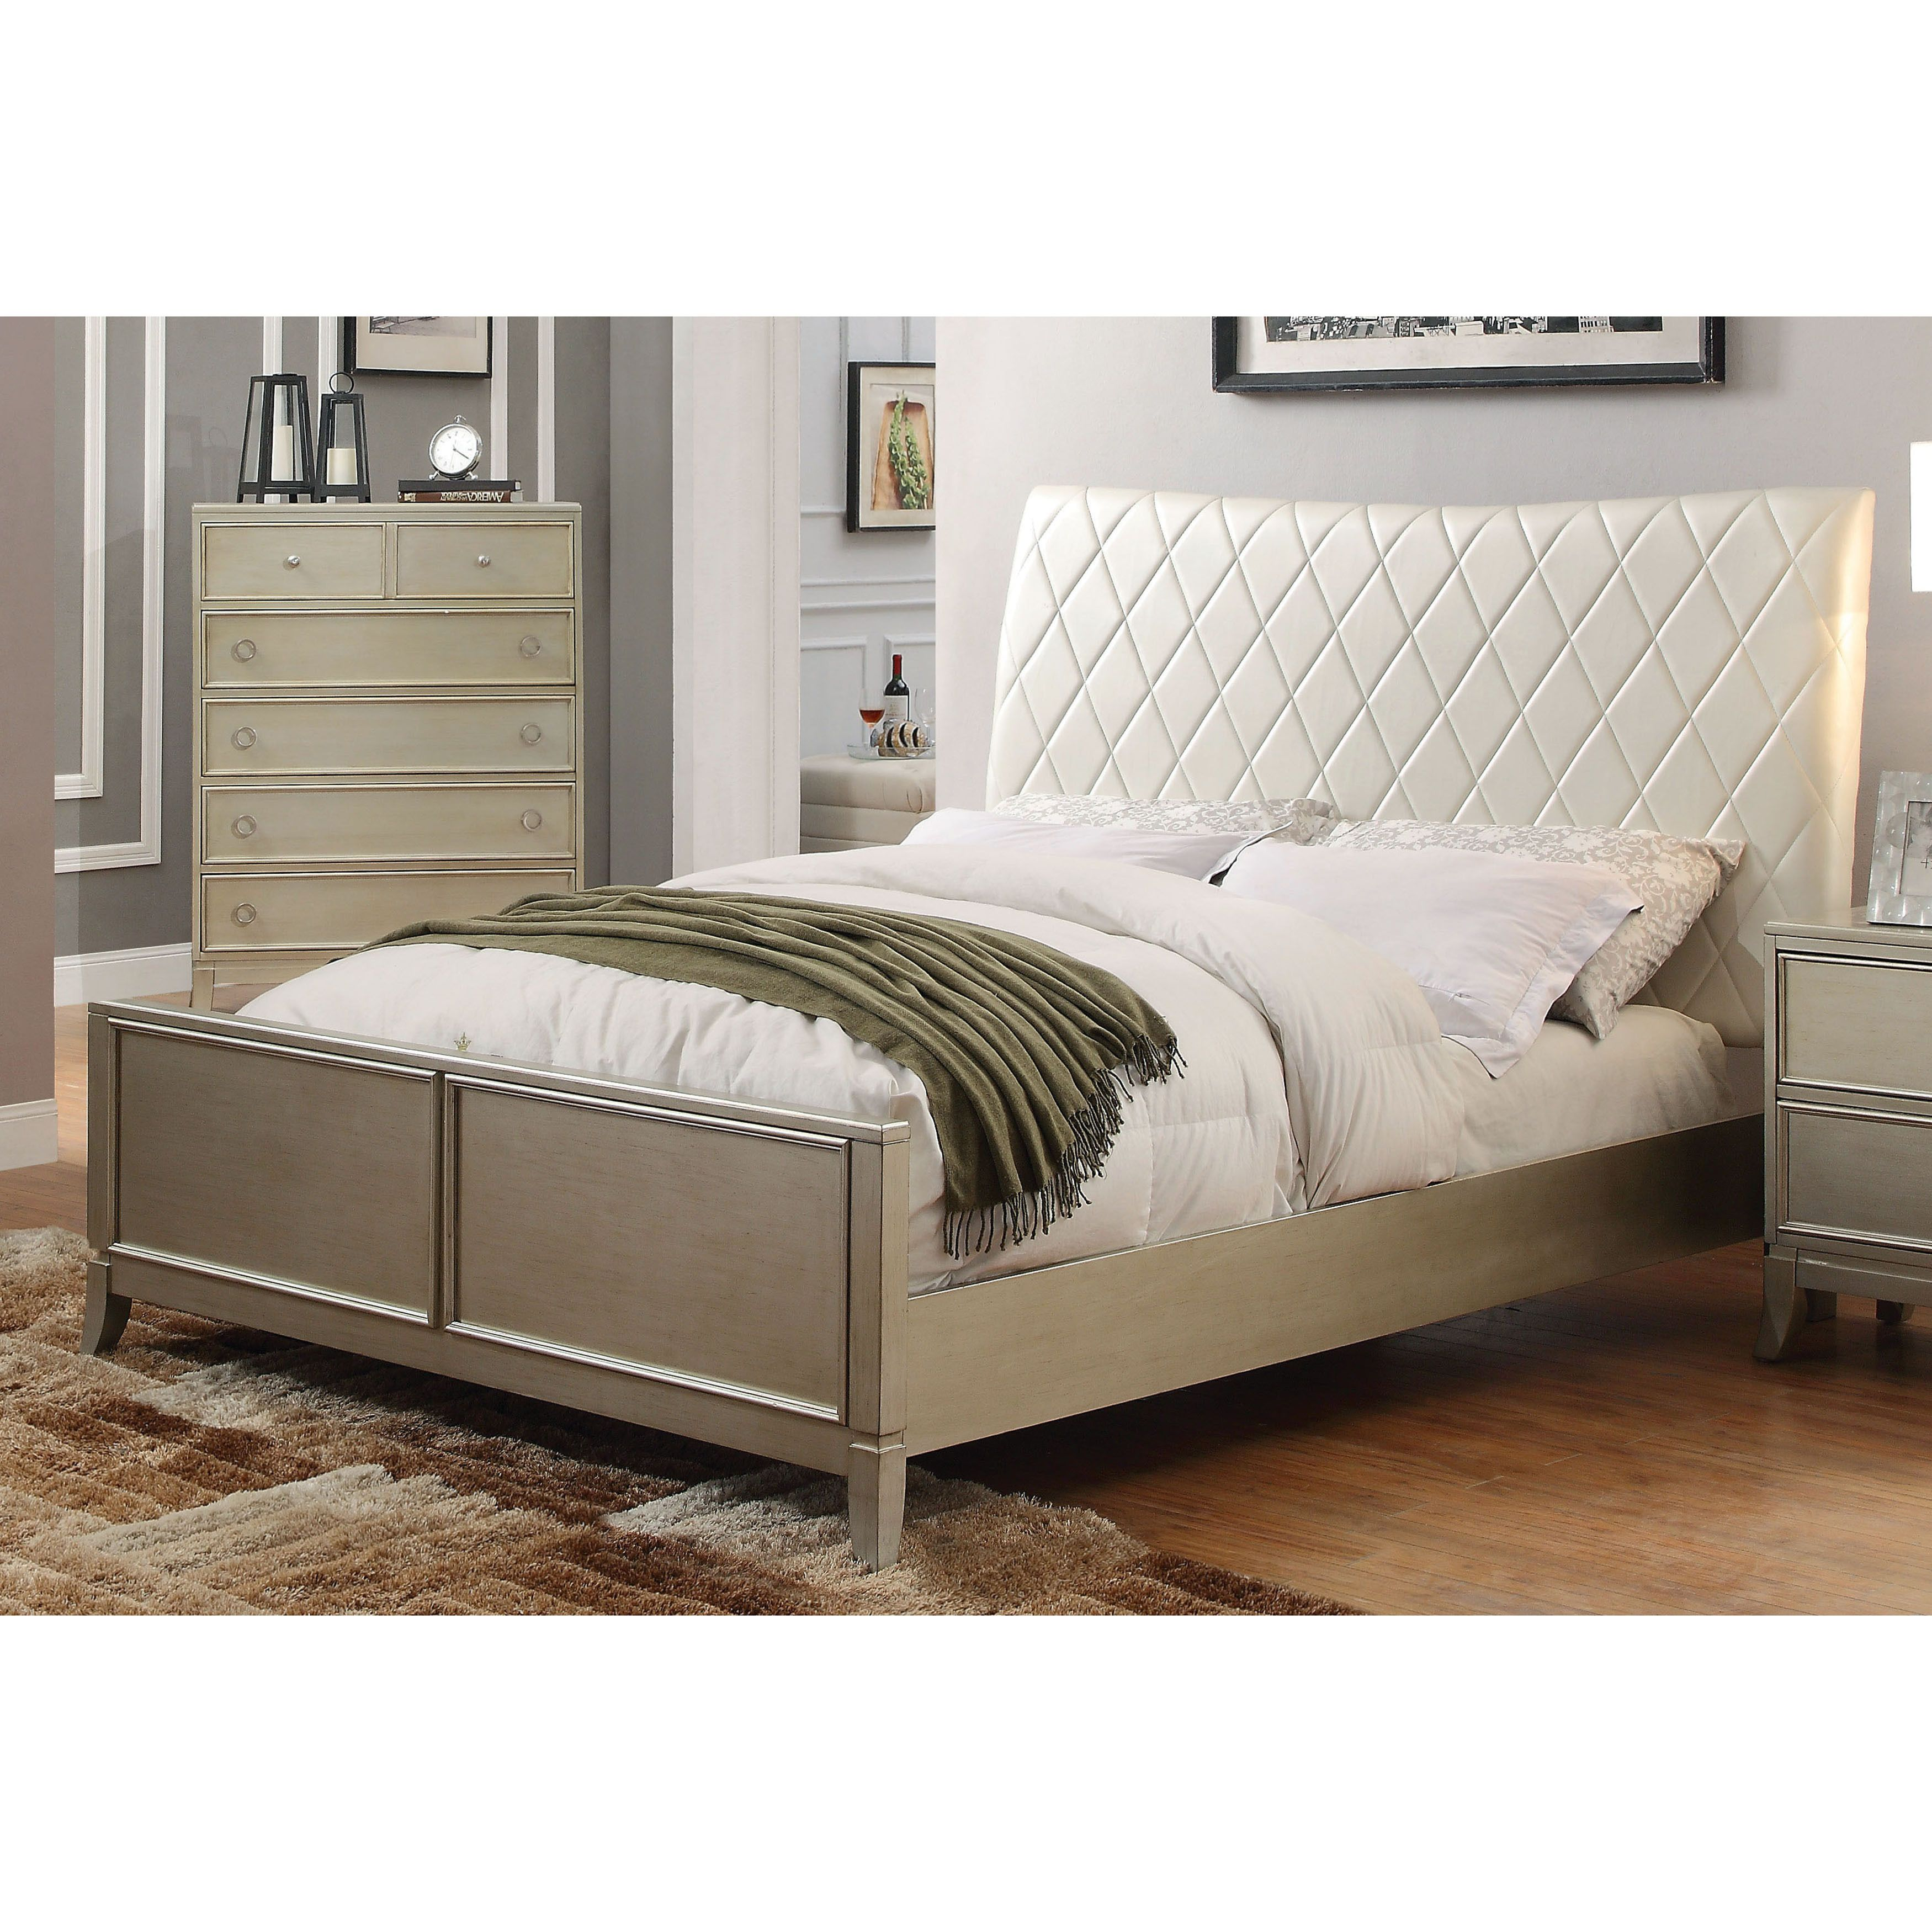 Shop Our Biggest Ever Memorial Day Sale King Size Beds Sale